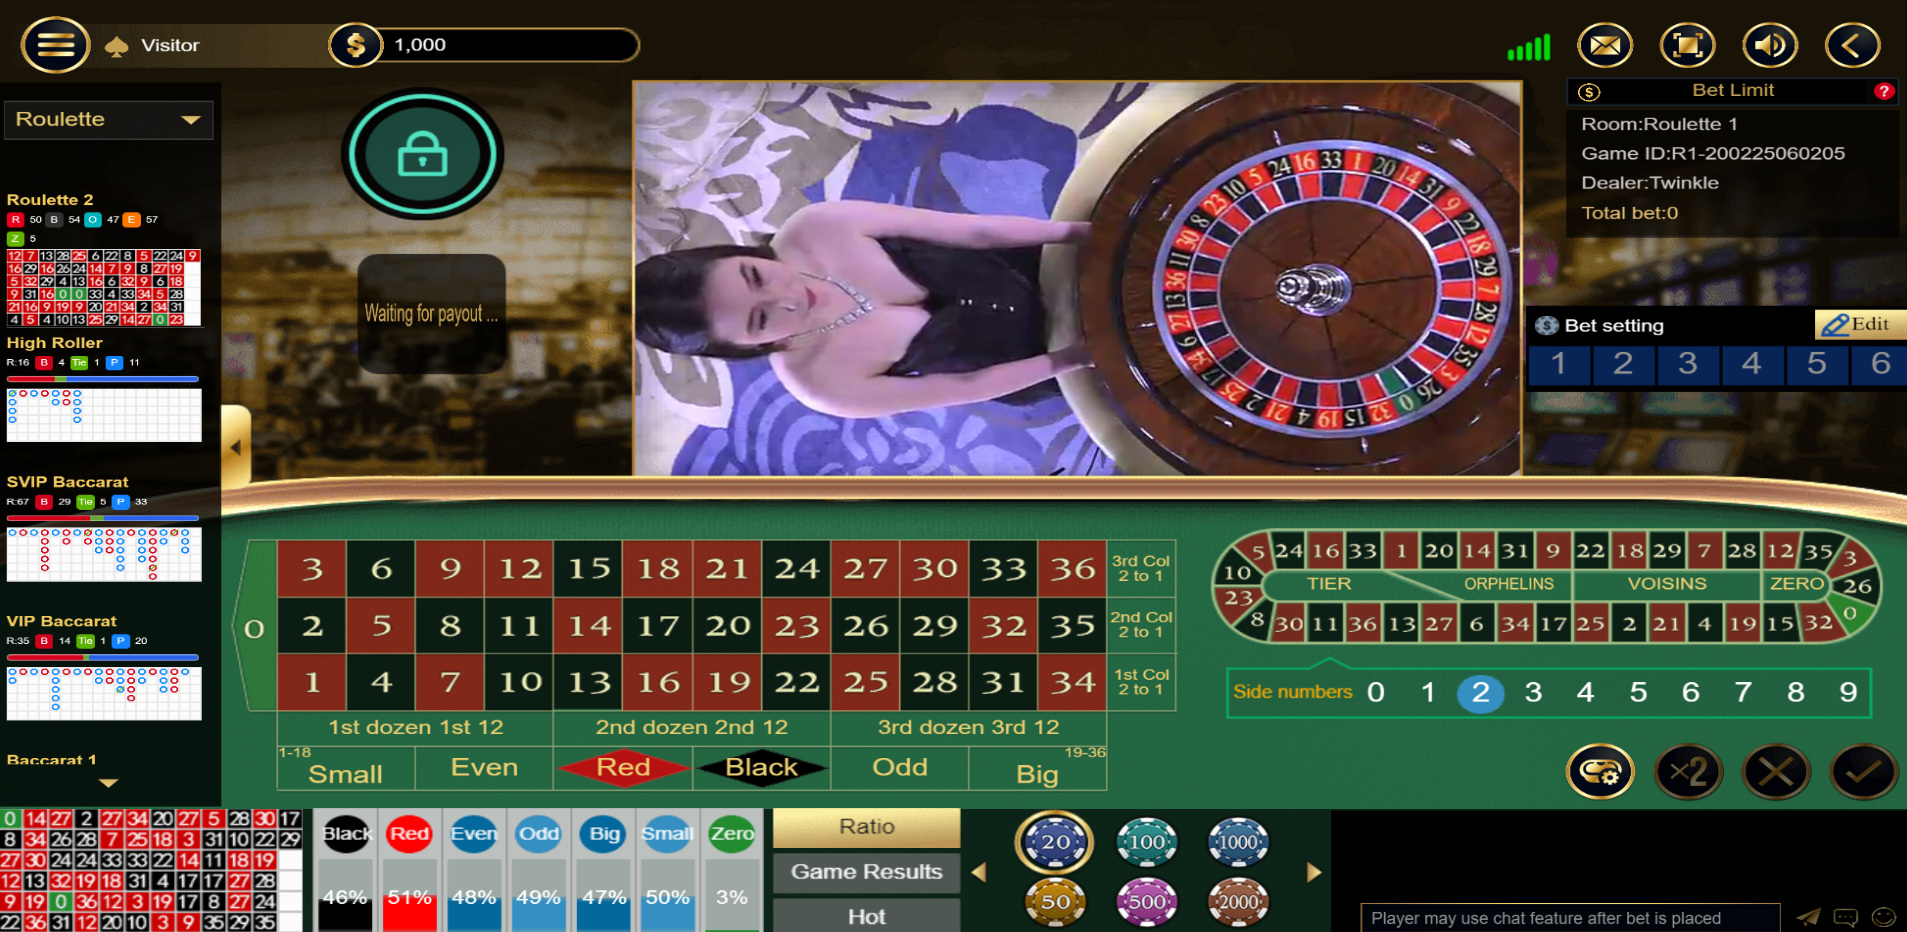 Ebet usa race betting online largest sports bet ever placed